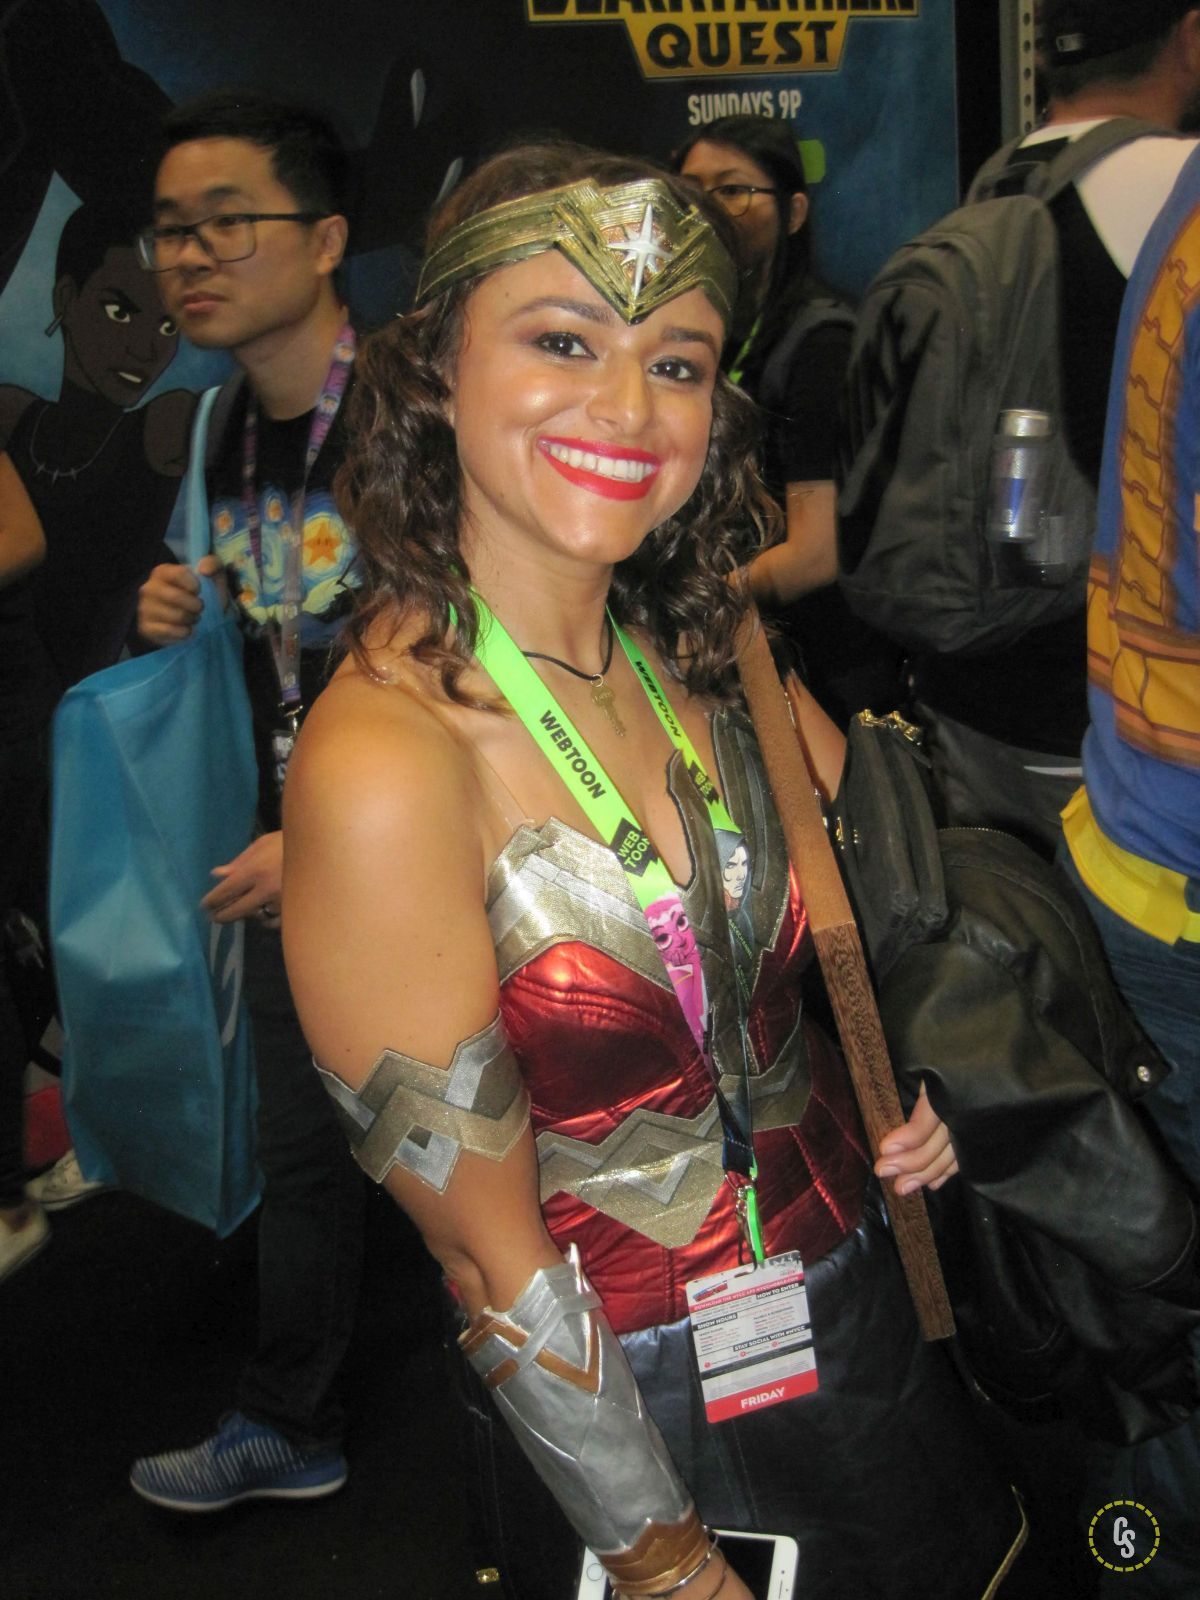 nycc182_048